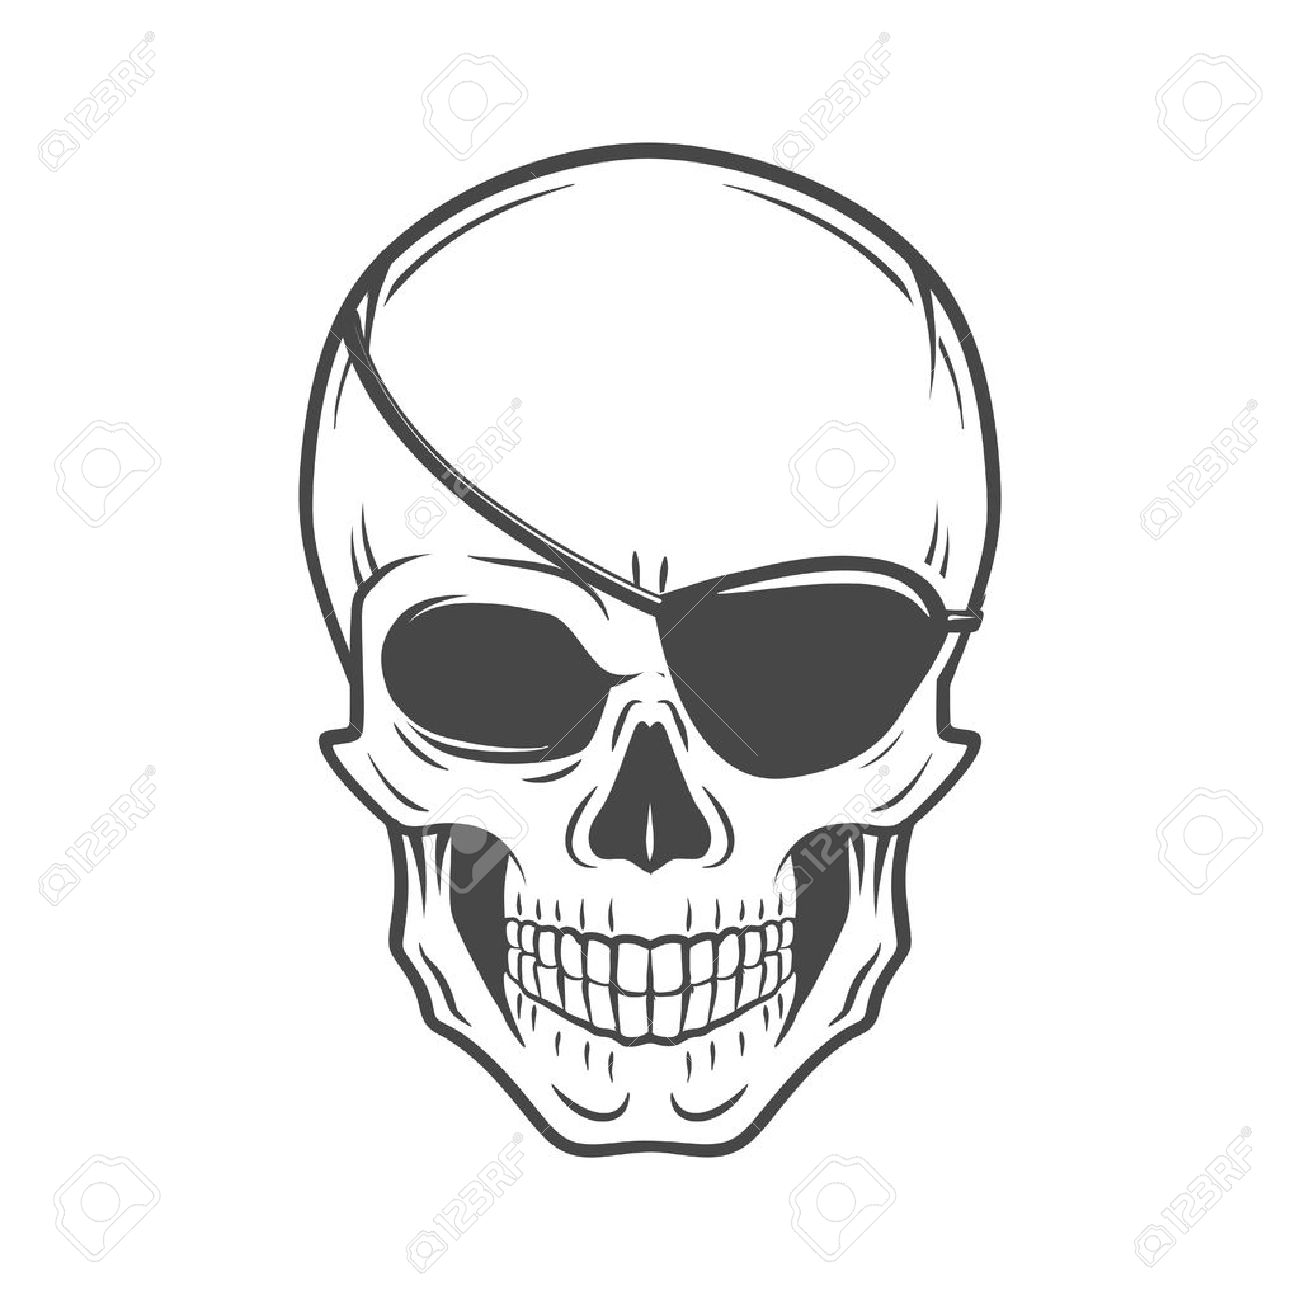 1300x1300 Jolly Roger With Eyepatch Logo Template. Evil Skull Vector. Dark